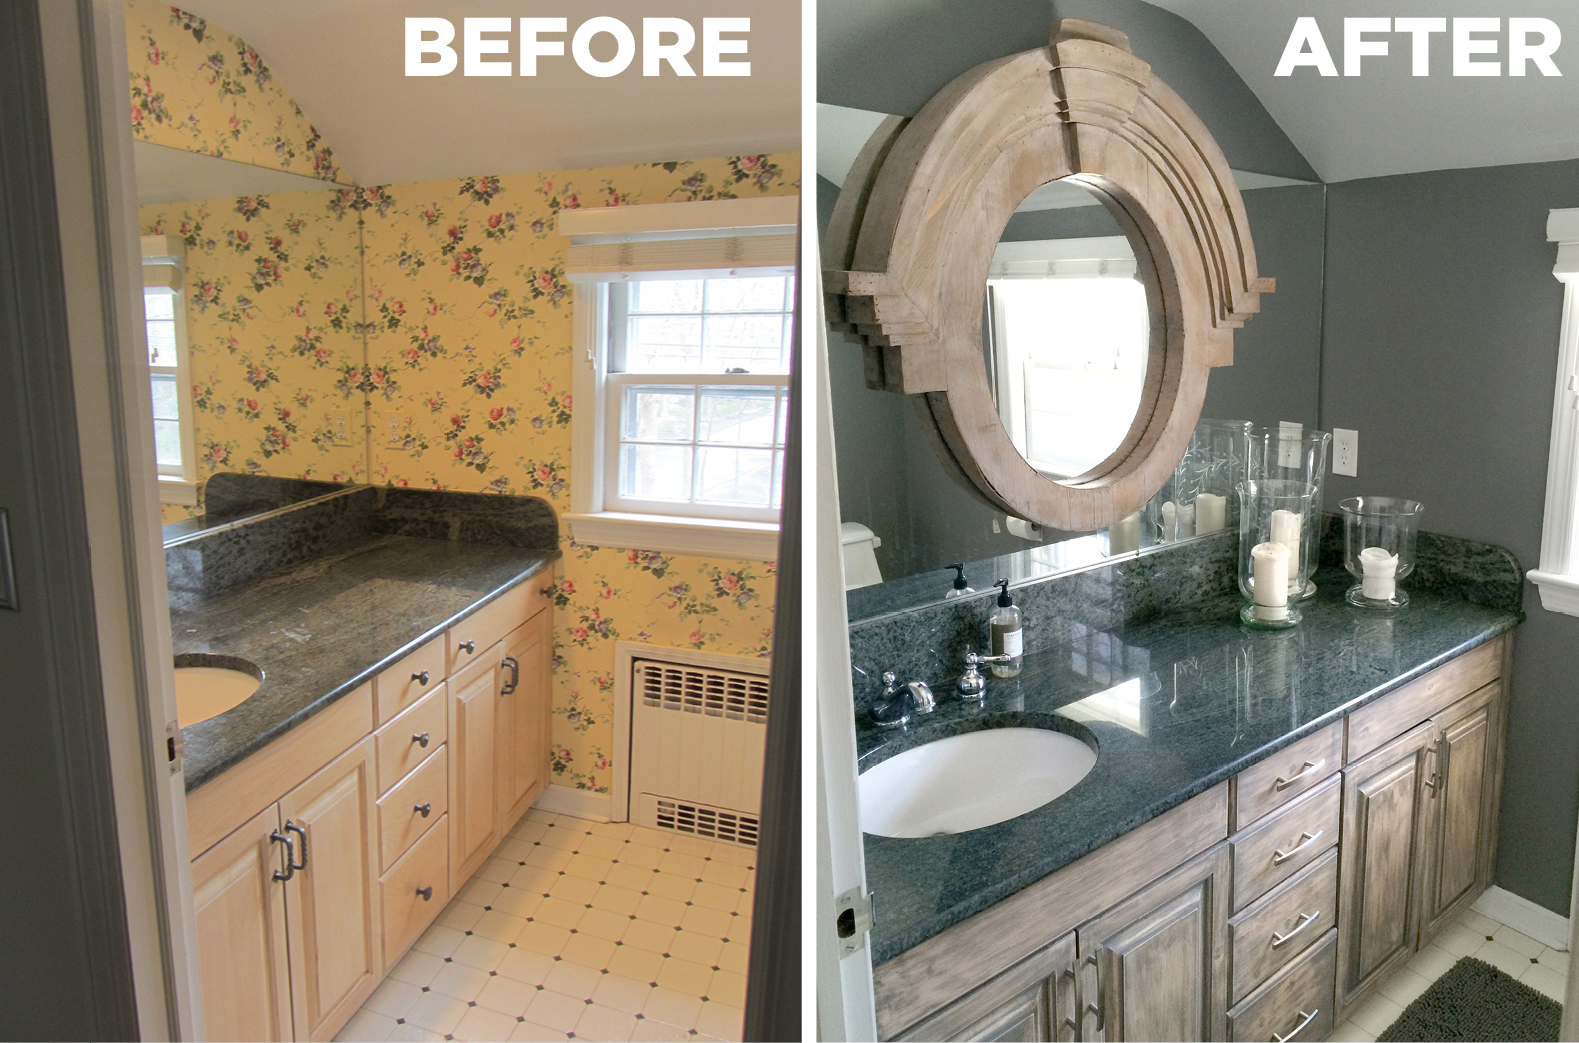 Bathroom Makeovers To Sell garage sale   a mere life